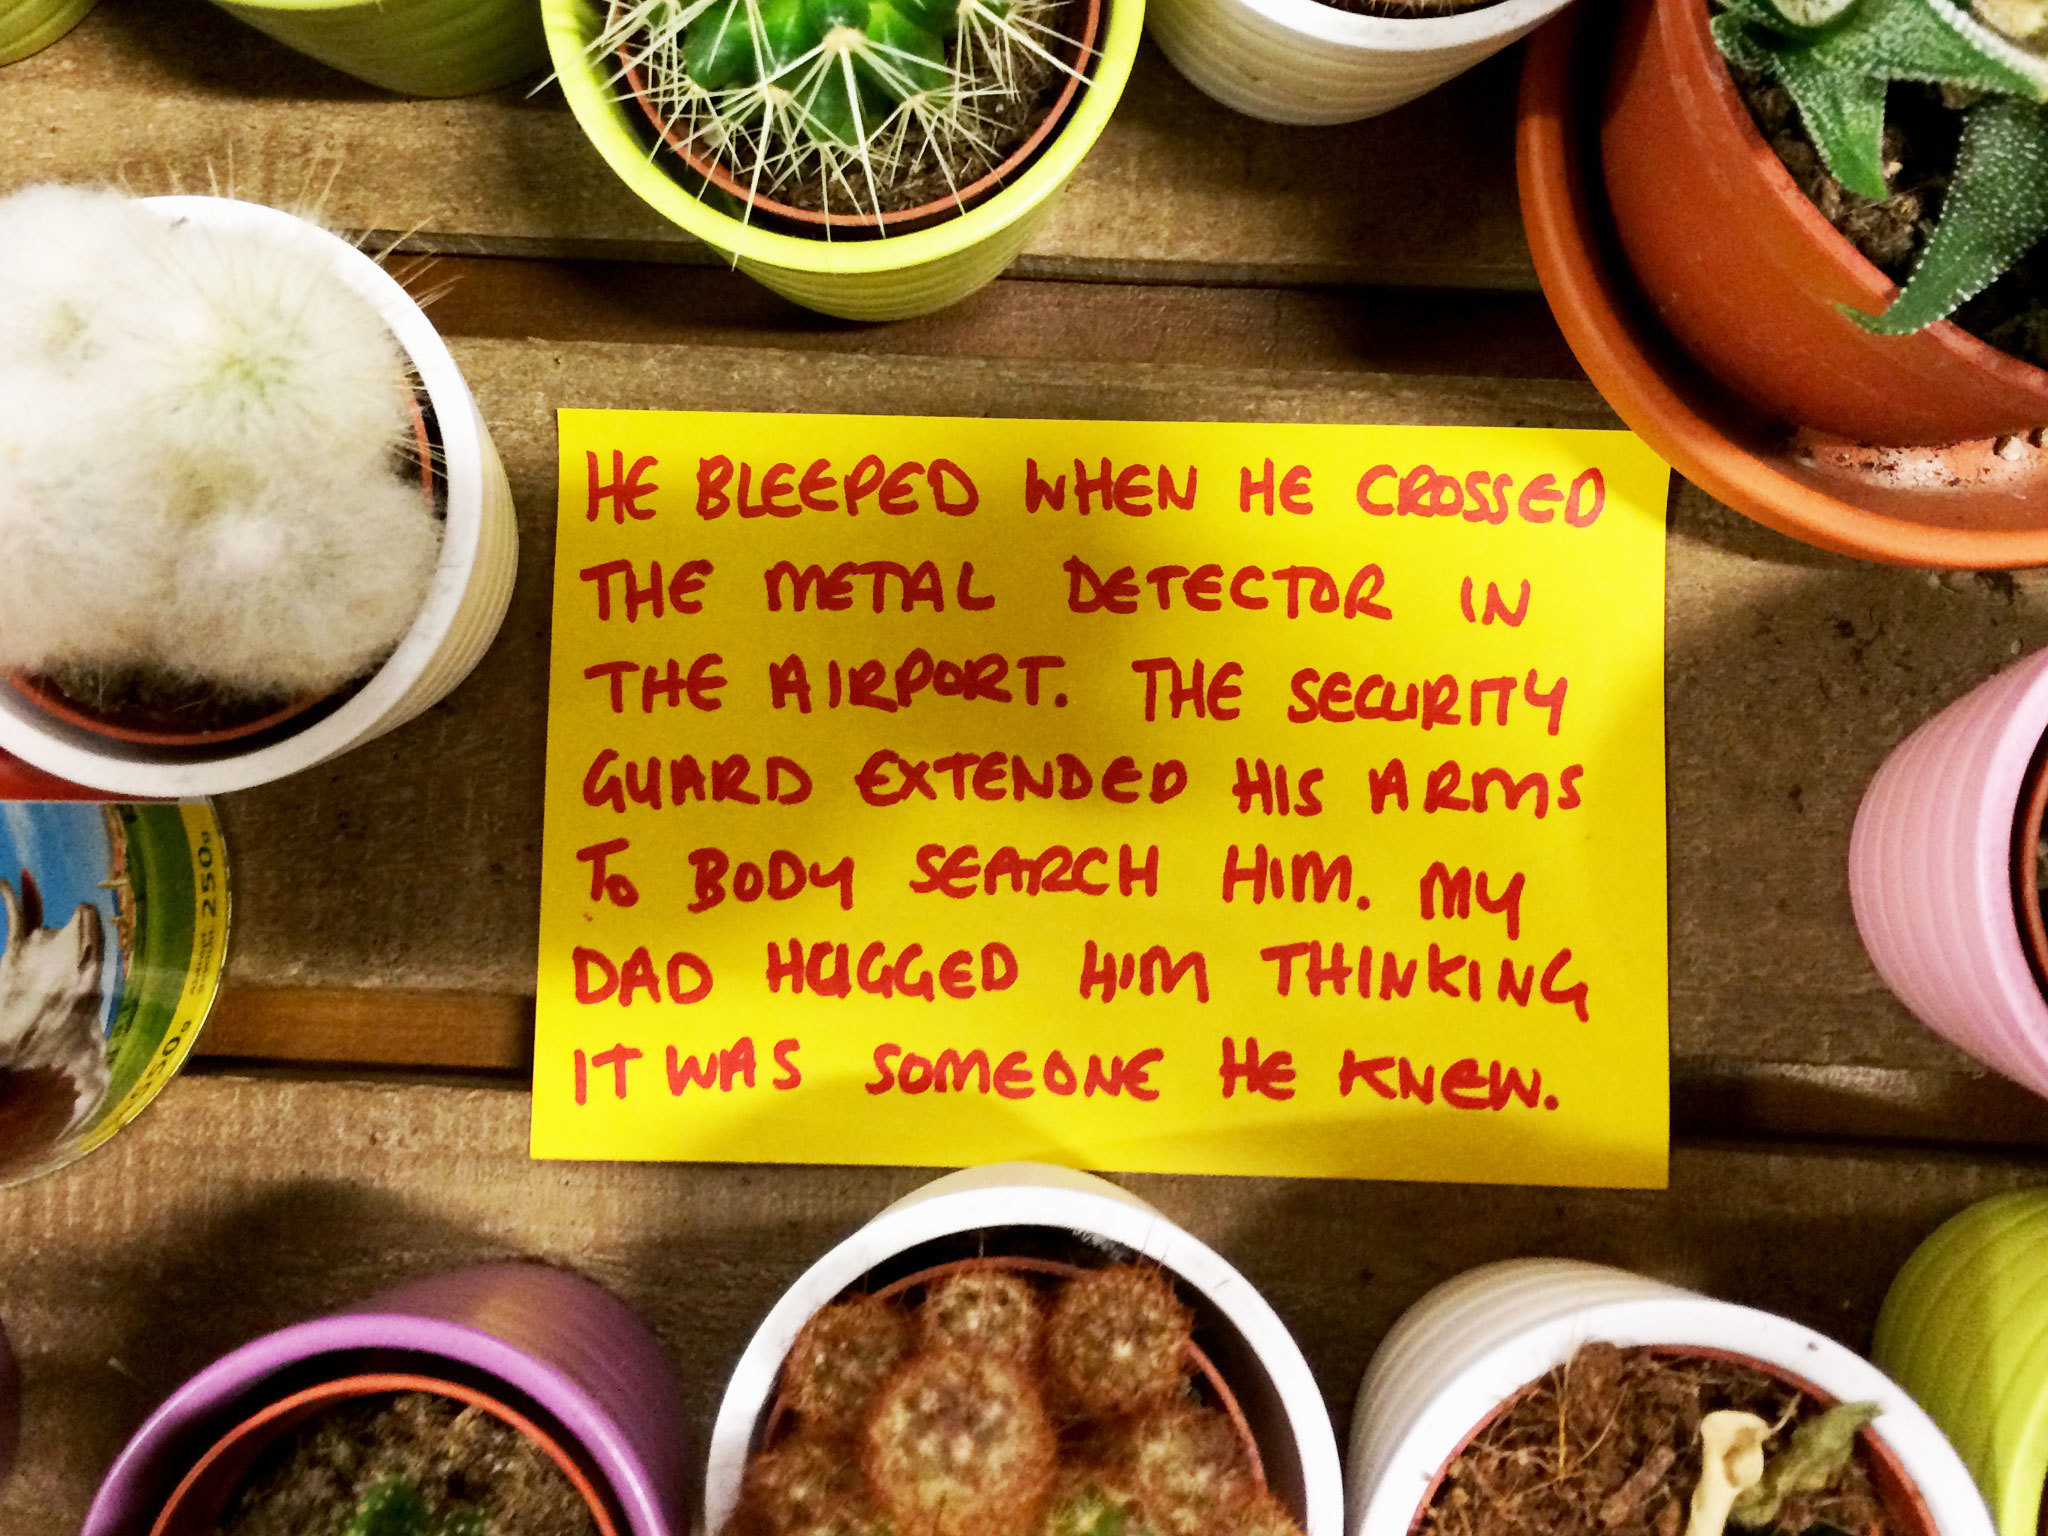 23 Londoners reveal their dads' legendary moments